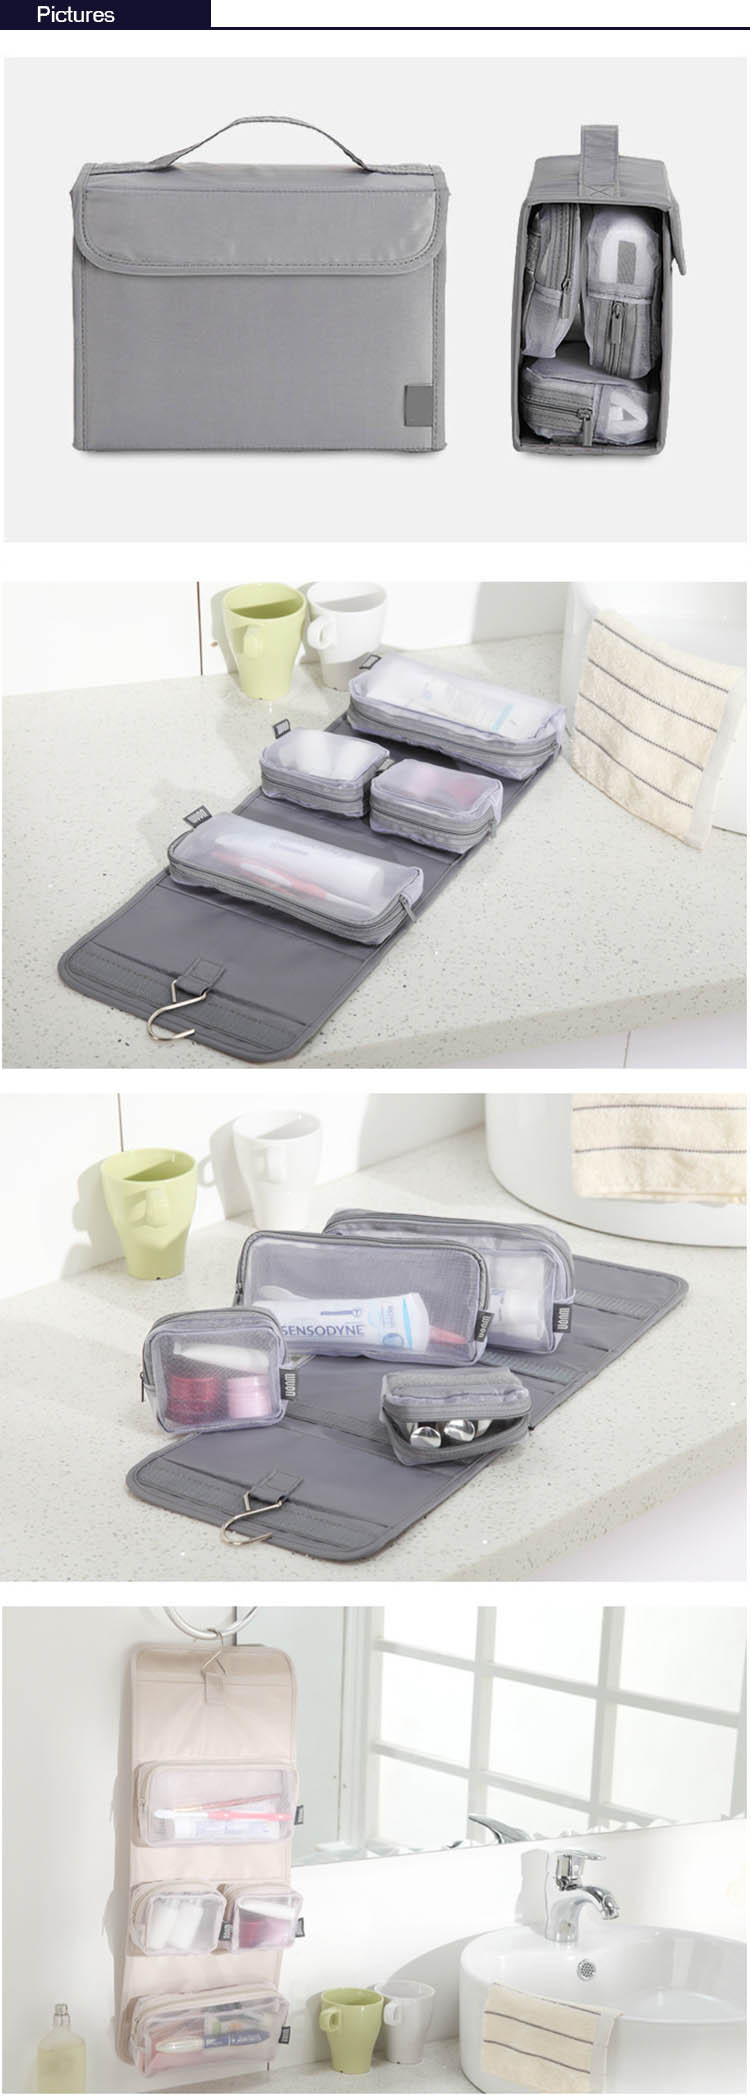 removable cosmetic bag supplier-6